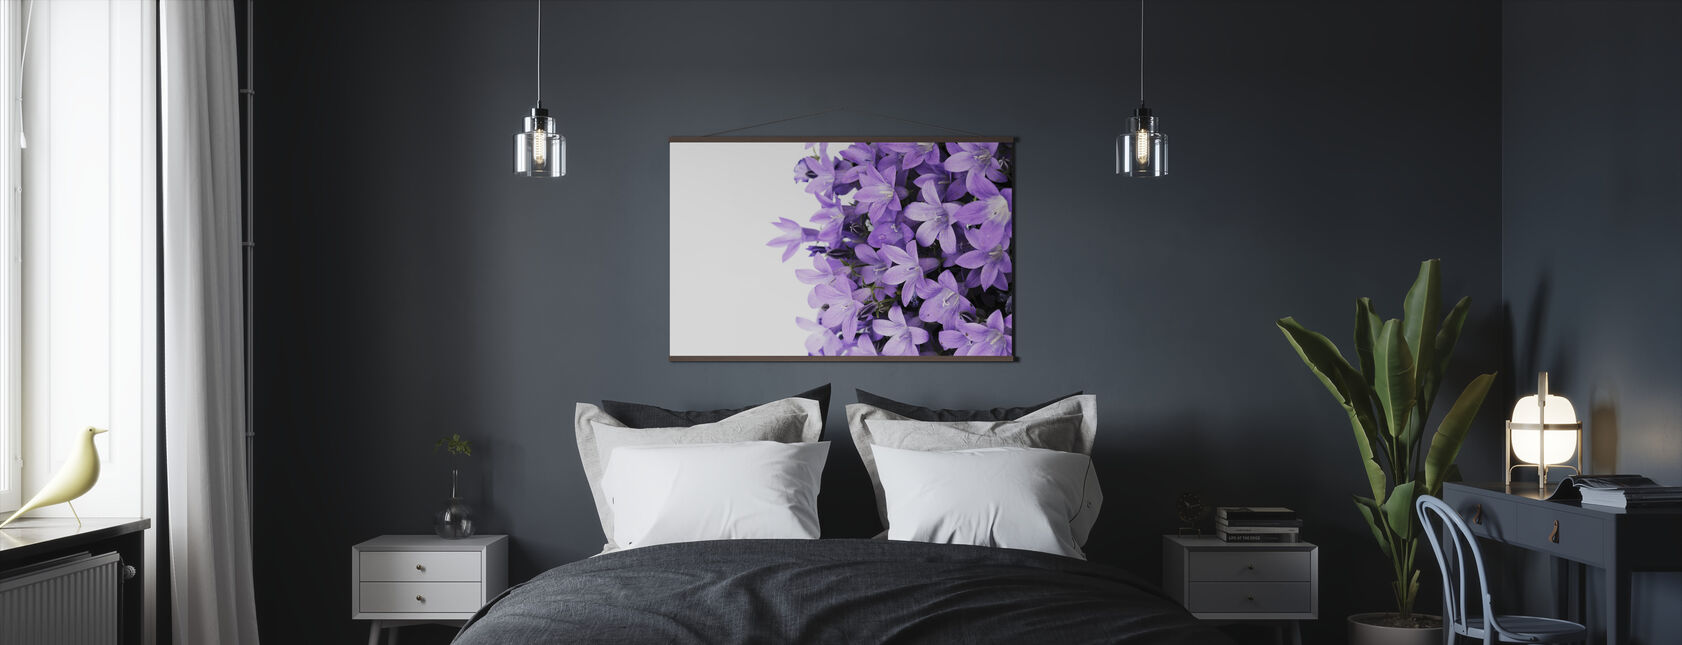 Purple Flowers - Poster - Bedroom